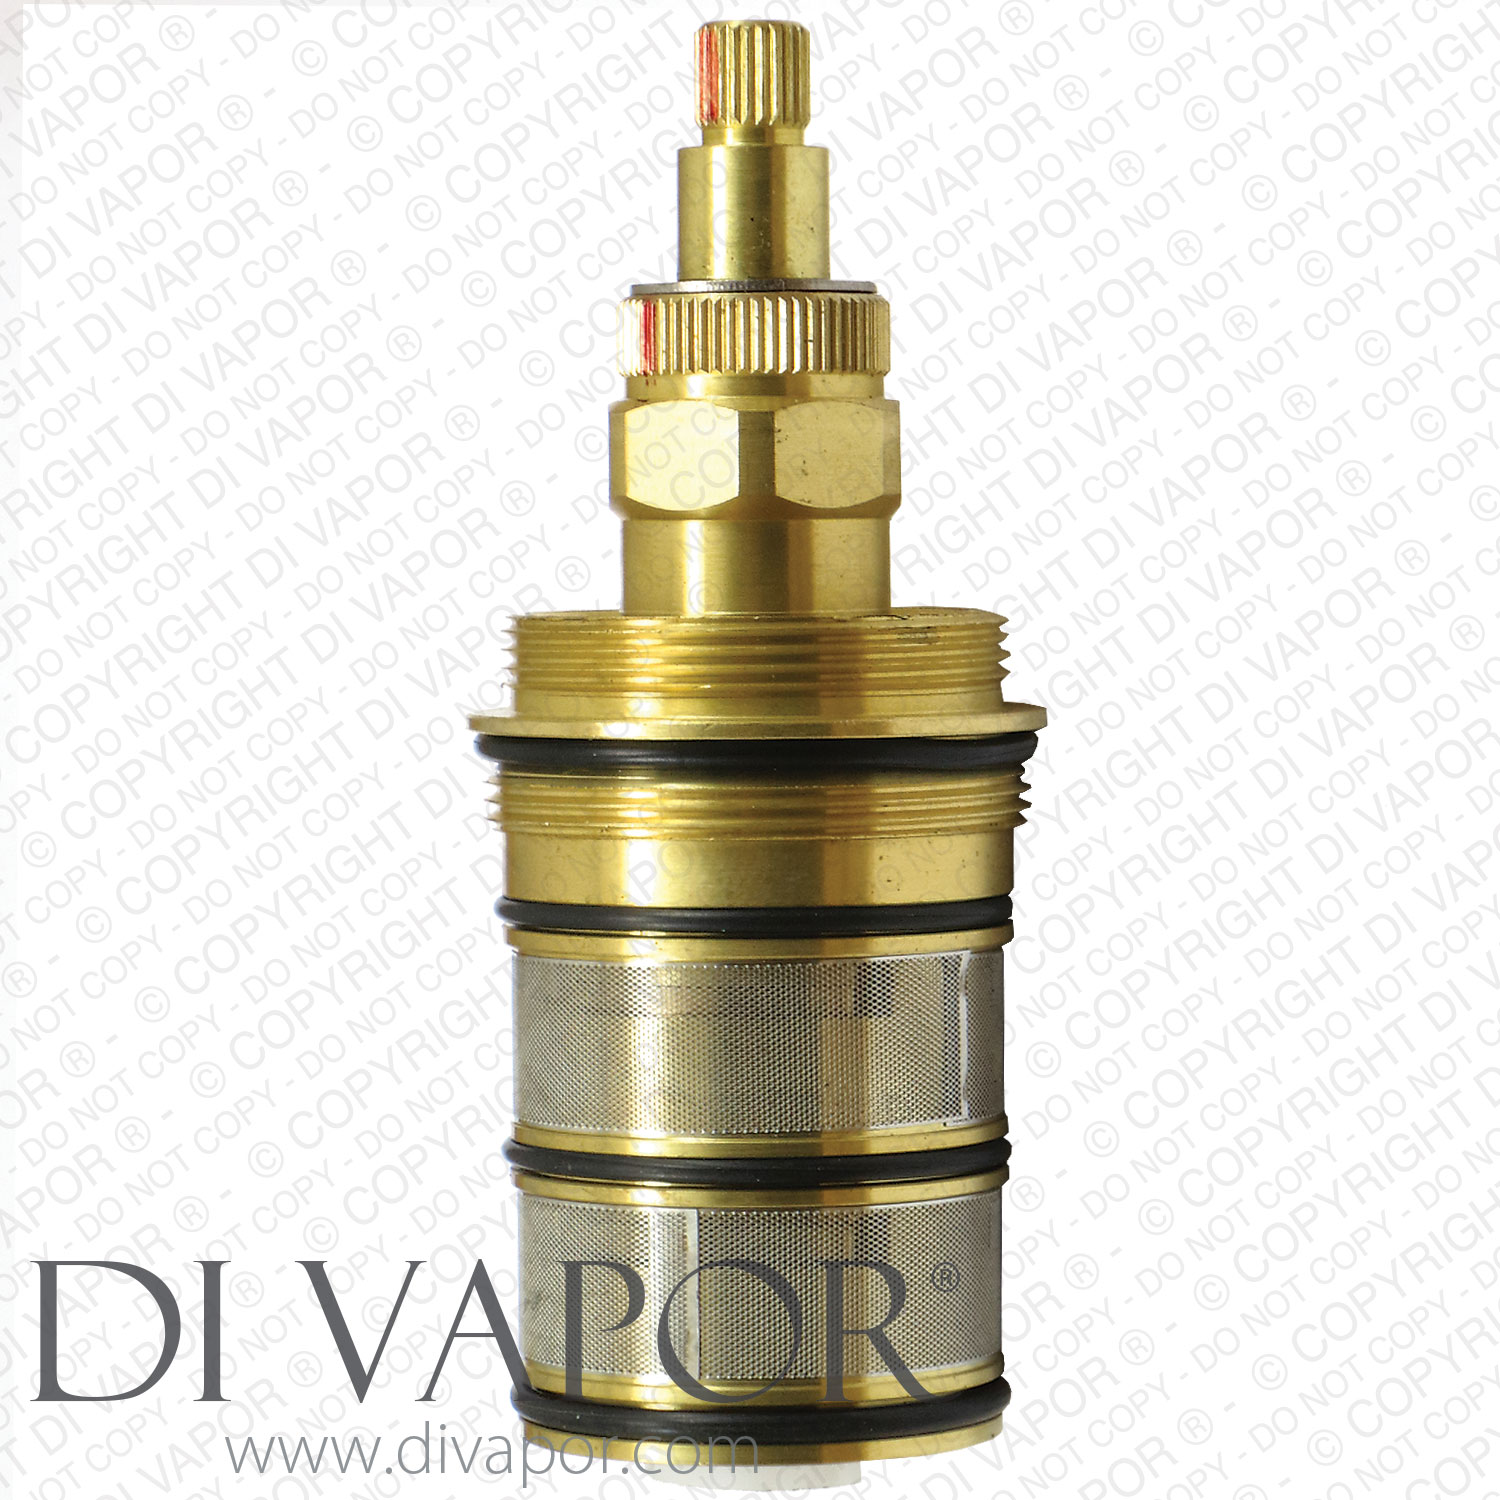 Thermostatic Cartridge for Victoria Plumb Concealed and Exposed Shower Valves